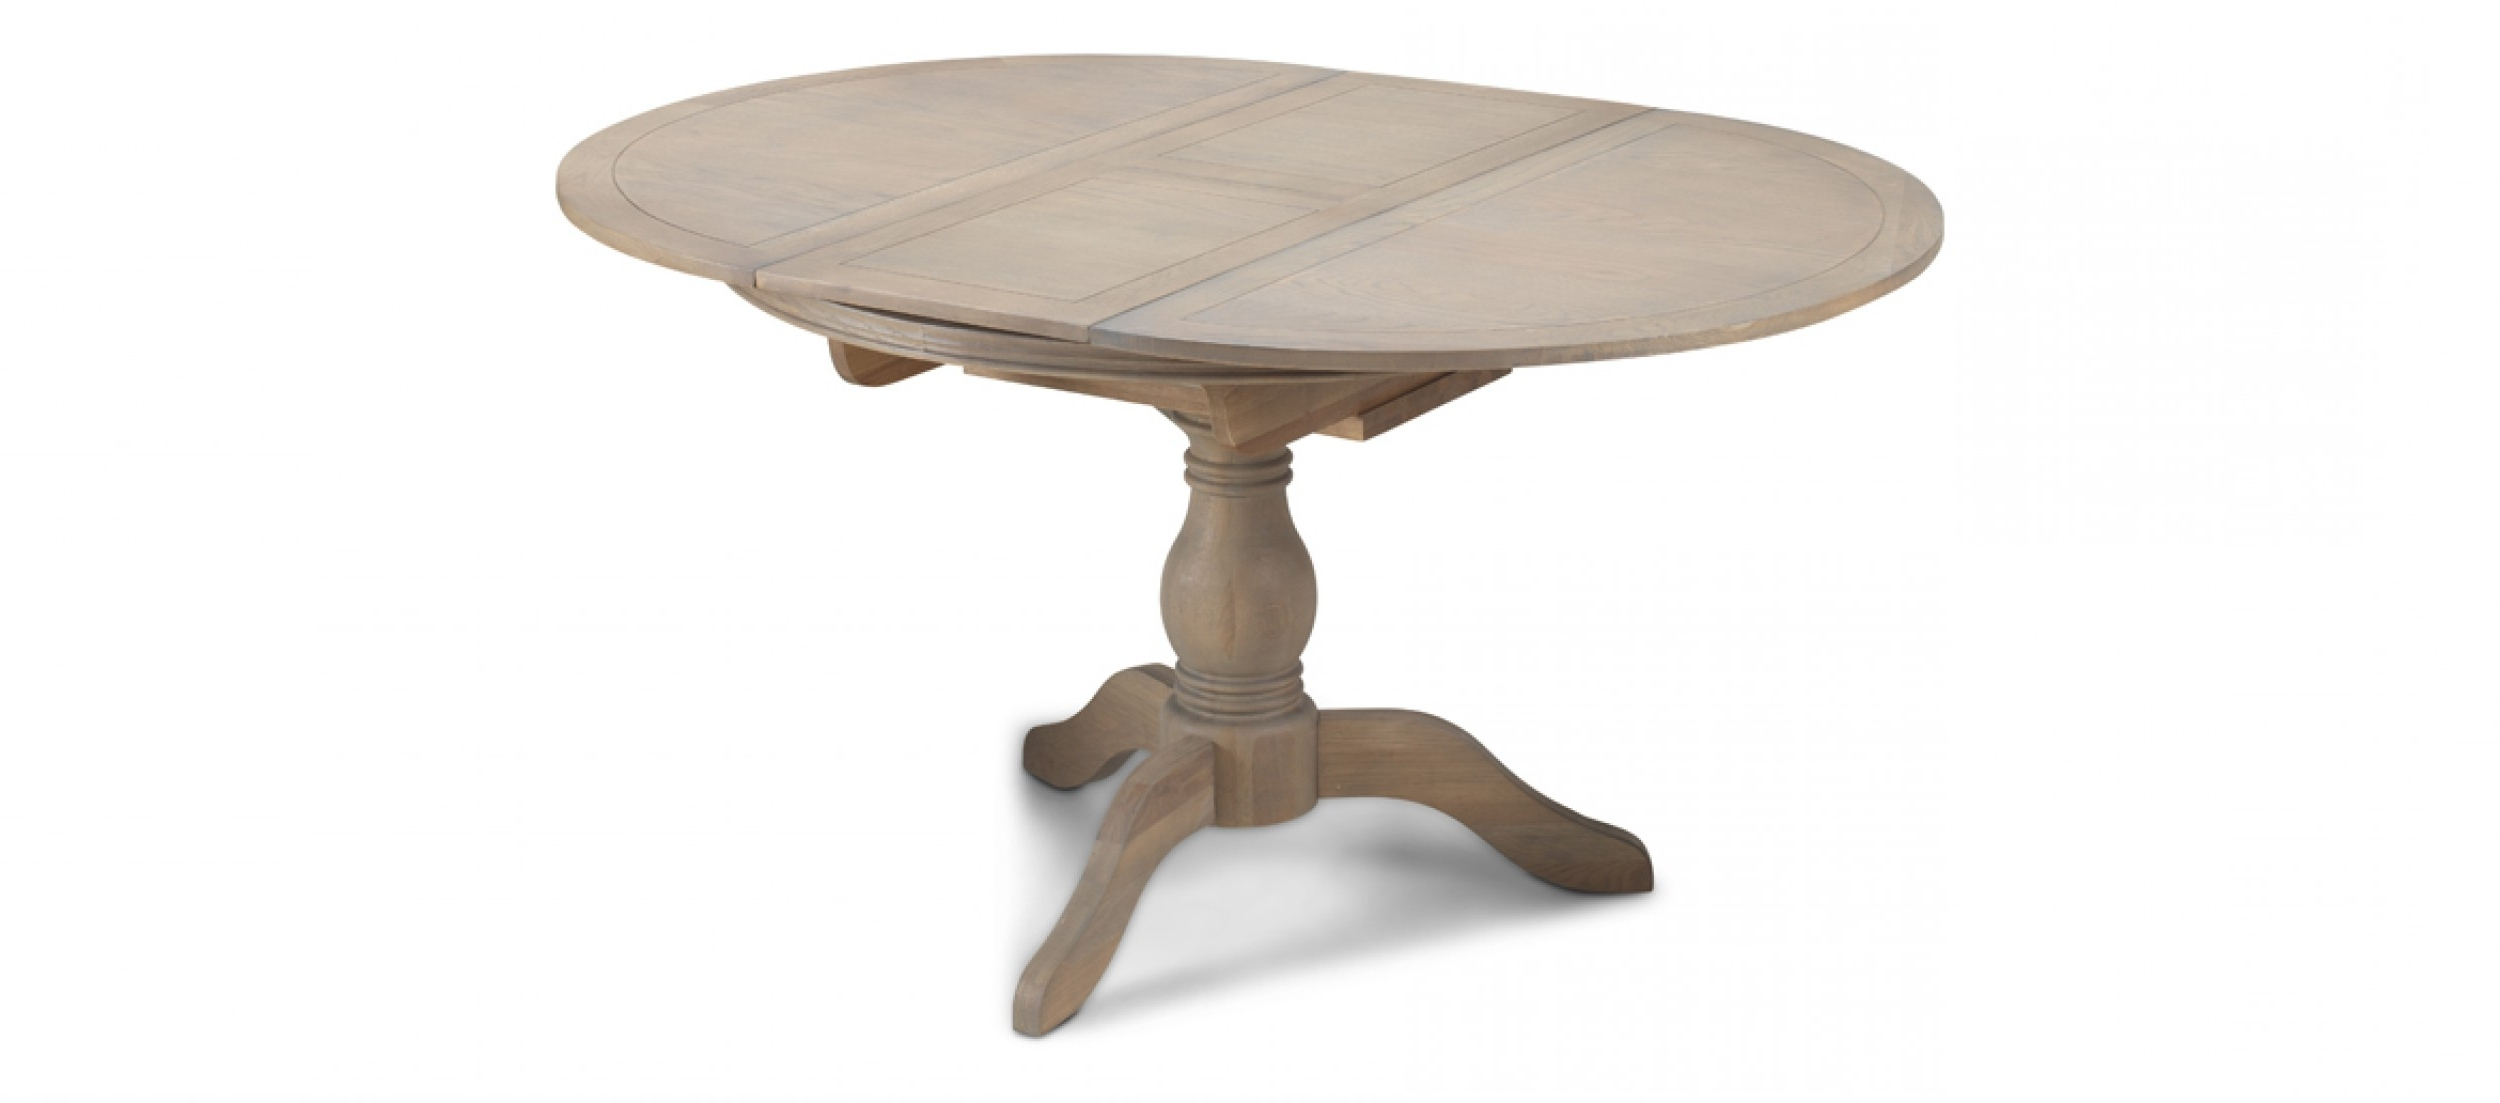 Kilmar Oak Living & Dining Ciruclar Extended Dining Table – Quercus Pertaining To Favorite Extended Round Dining Tables (View 11 of 25)